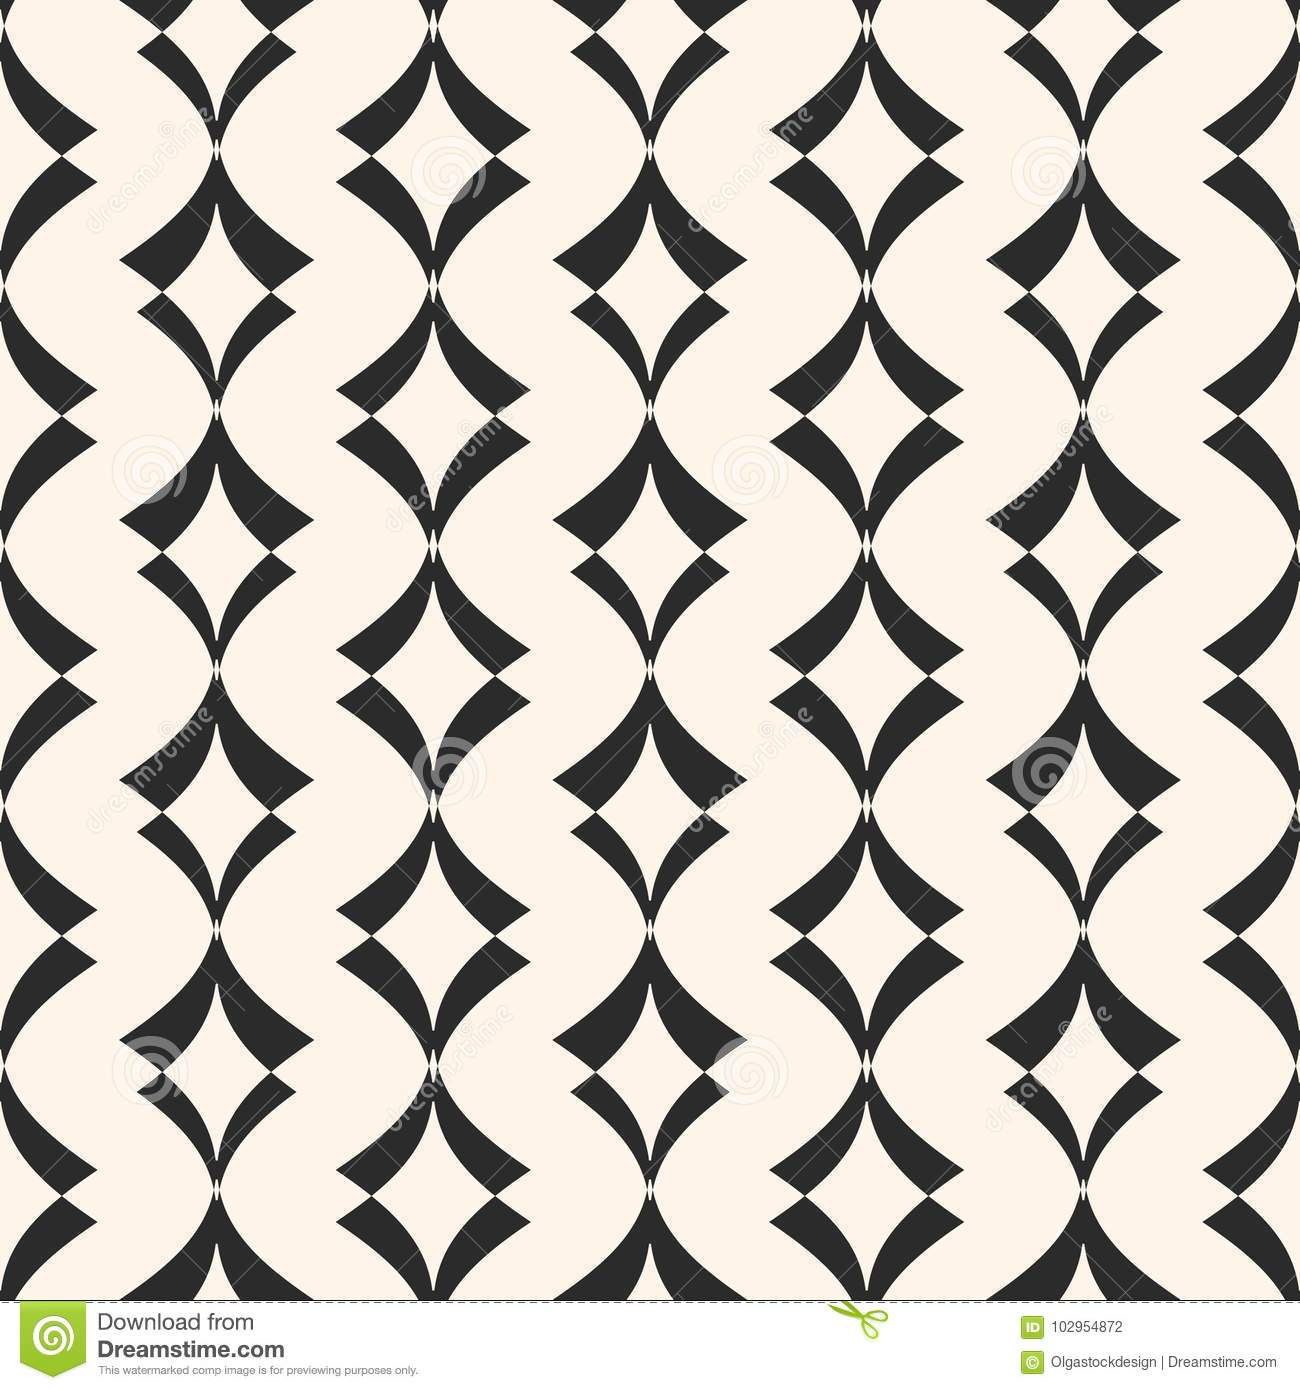 art deco seamless pattern geometric texture with curved shapes rh dreamstime com art deco patterns vector free art deco geometric pattern vector free